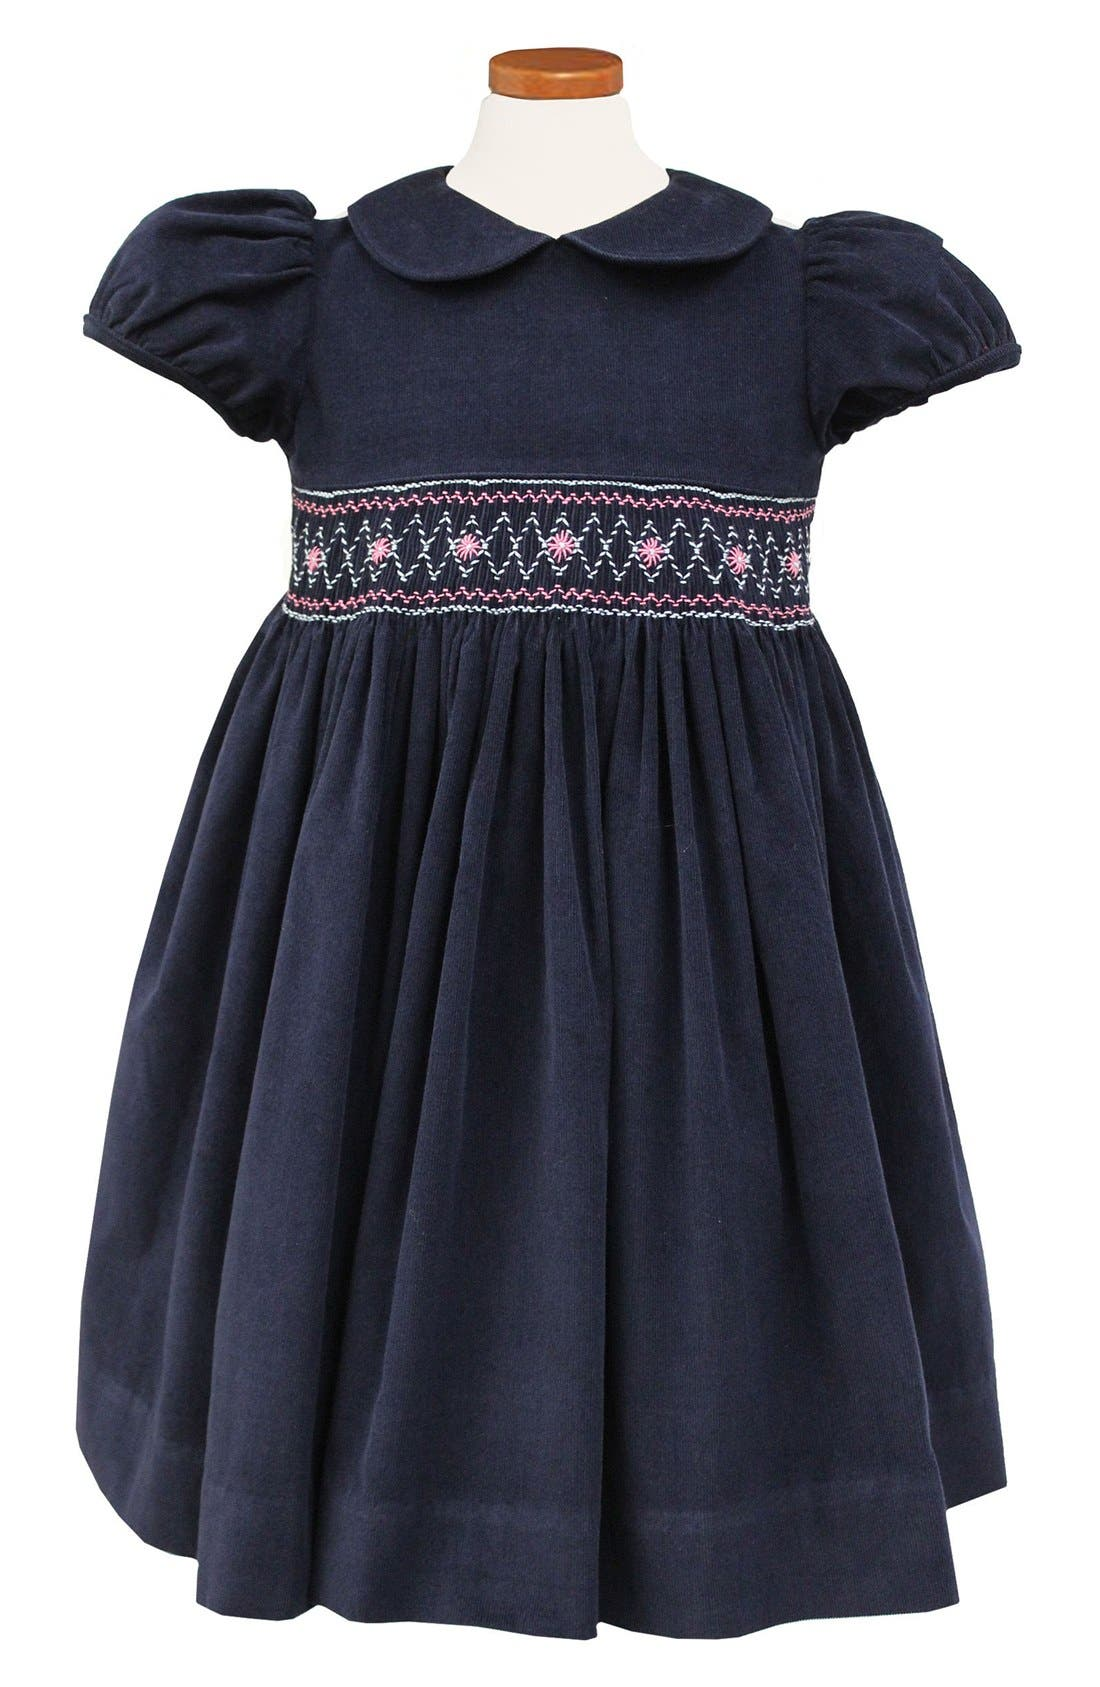 Embroidered Smocked Waist Dress,                         Main,                         color,